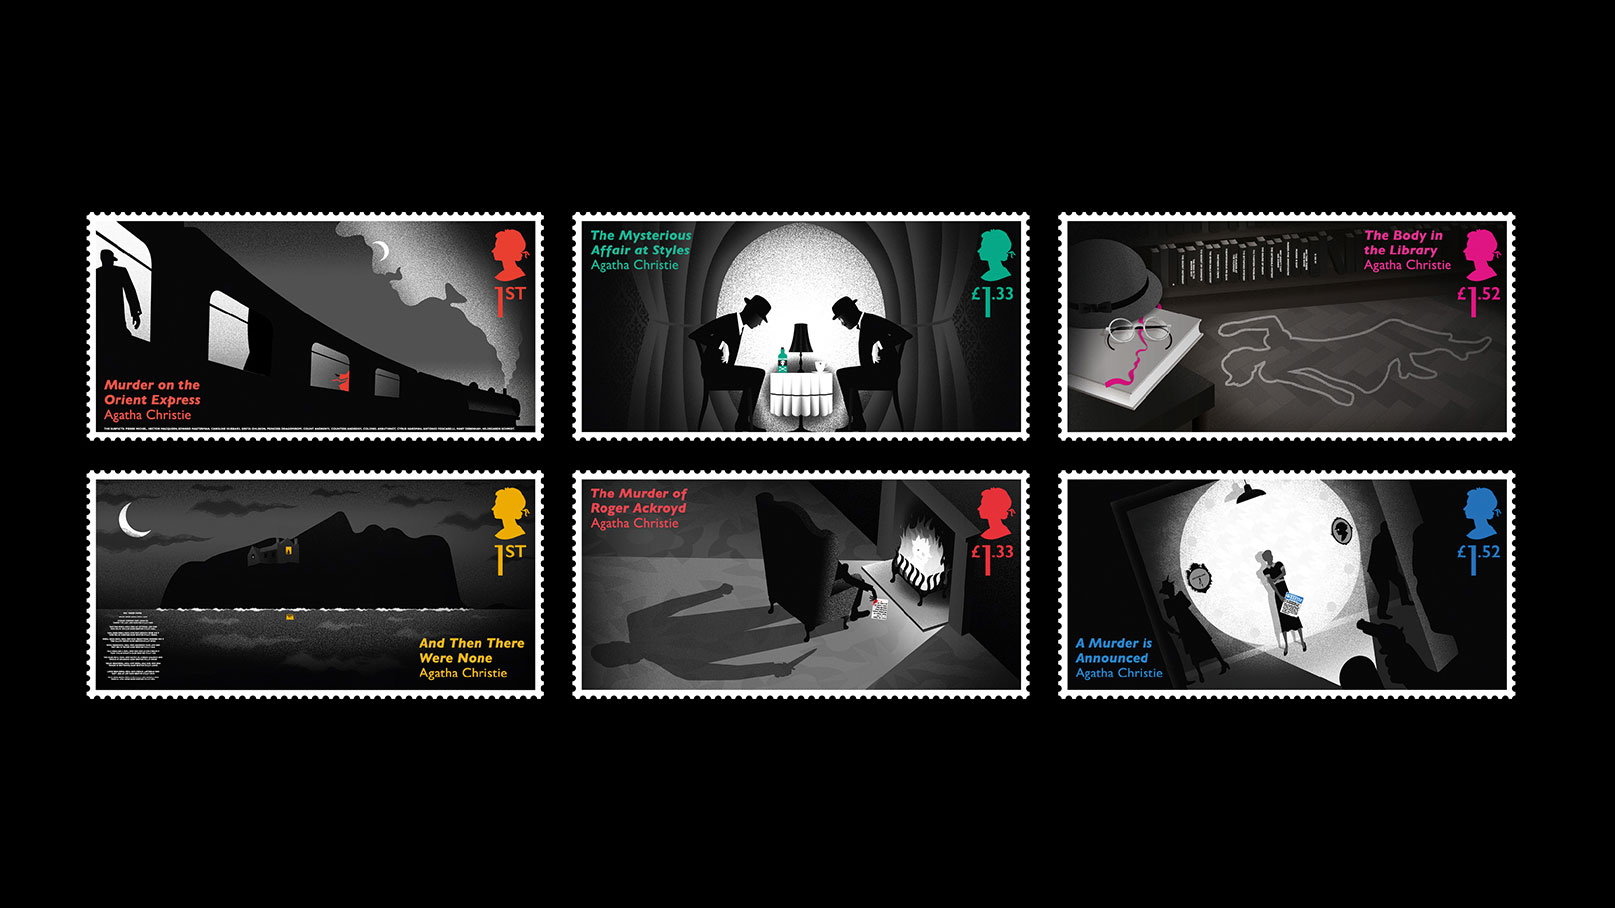 Agatha Christie stamps by Studio Sutherl&